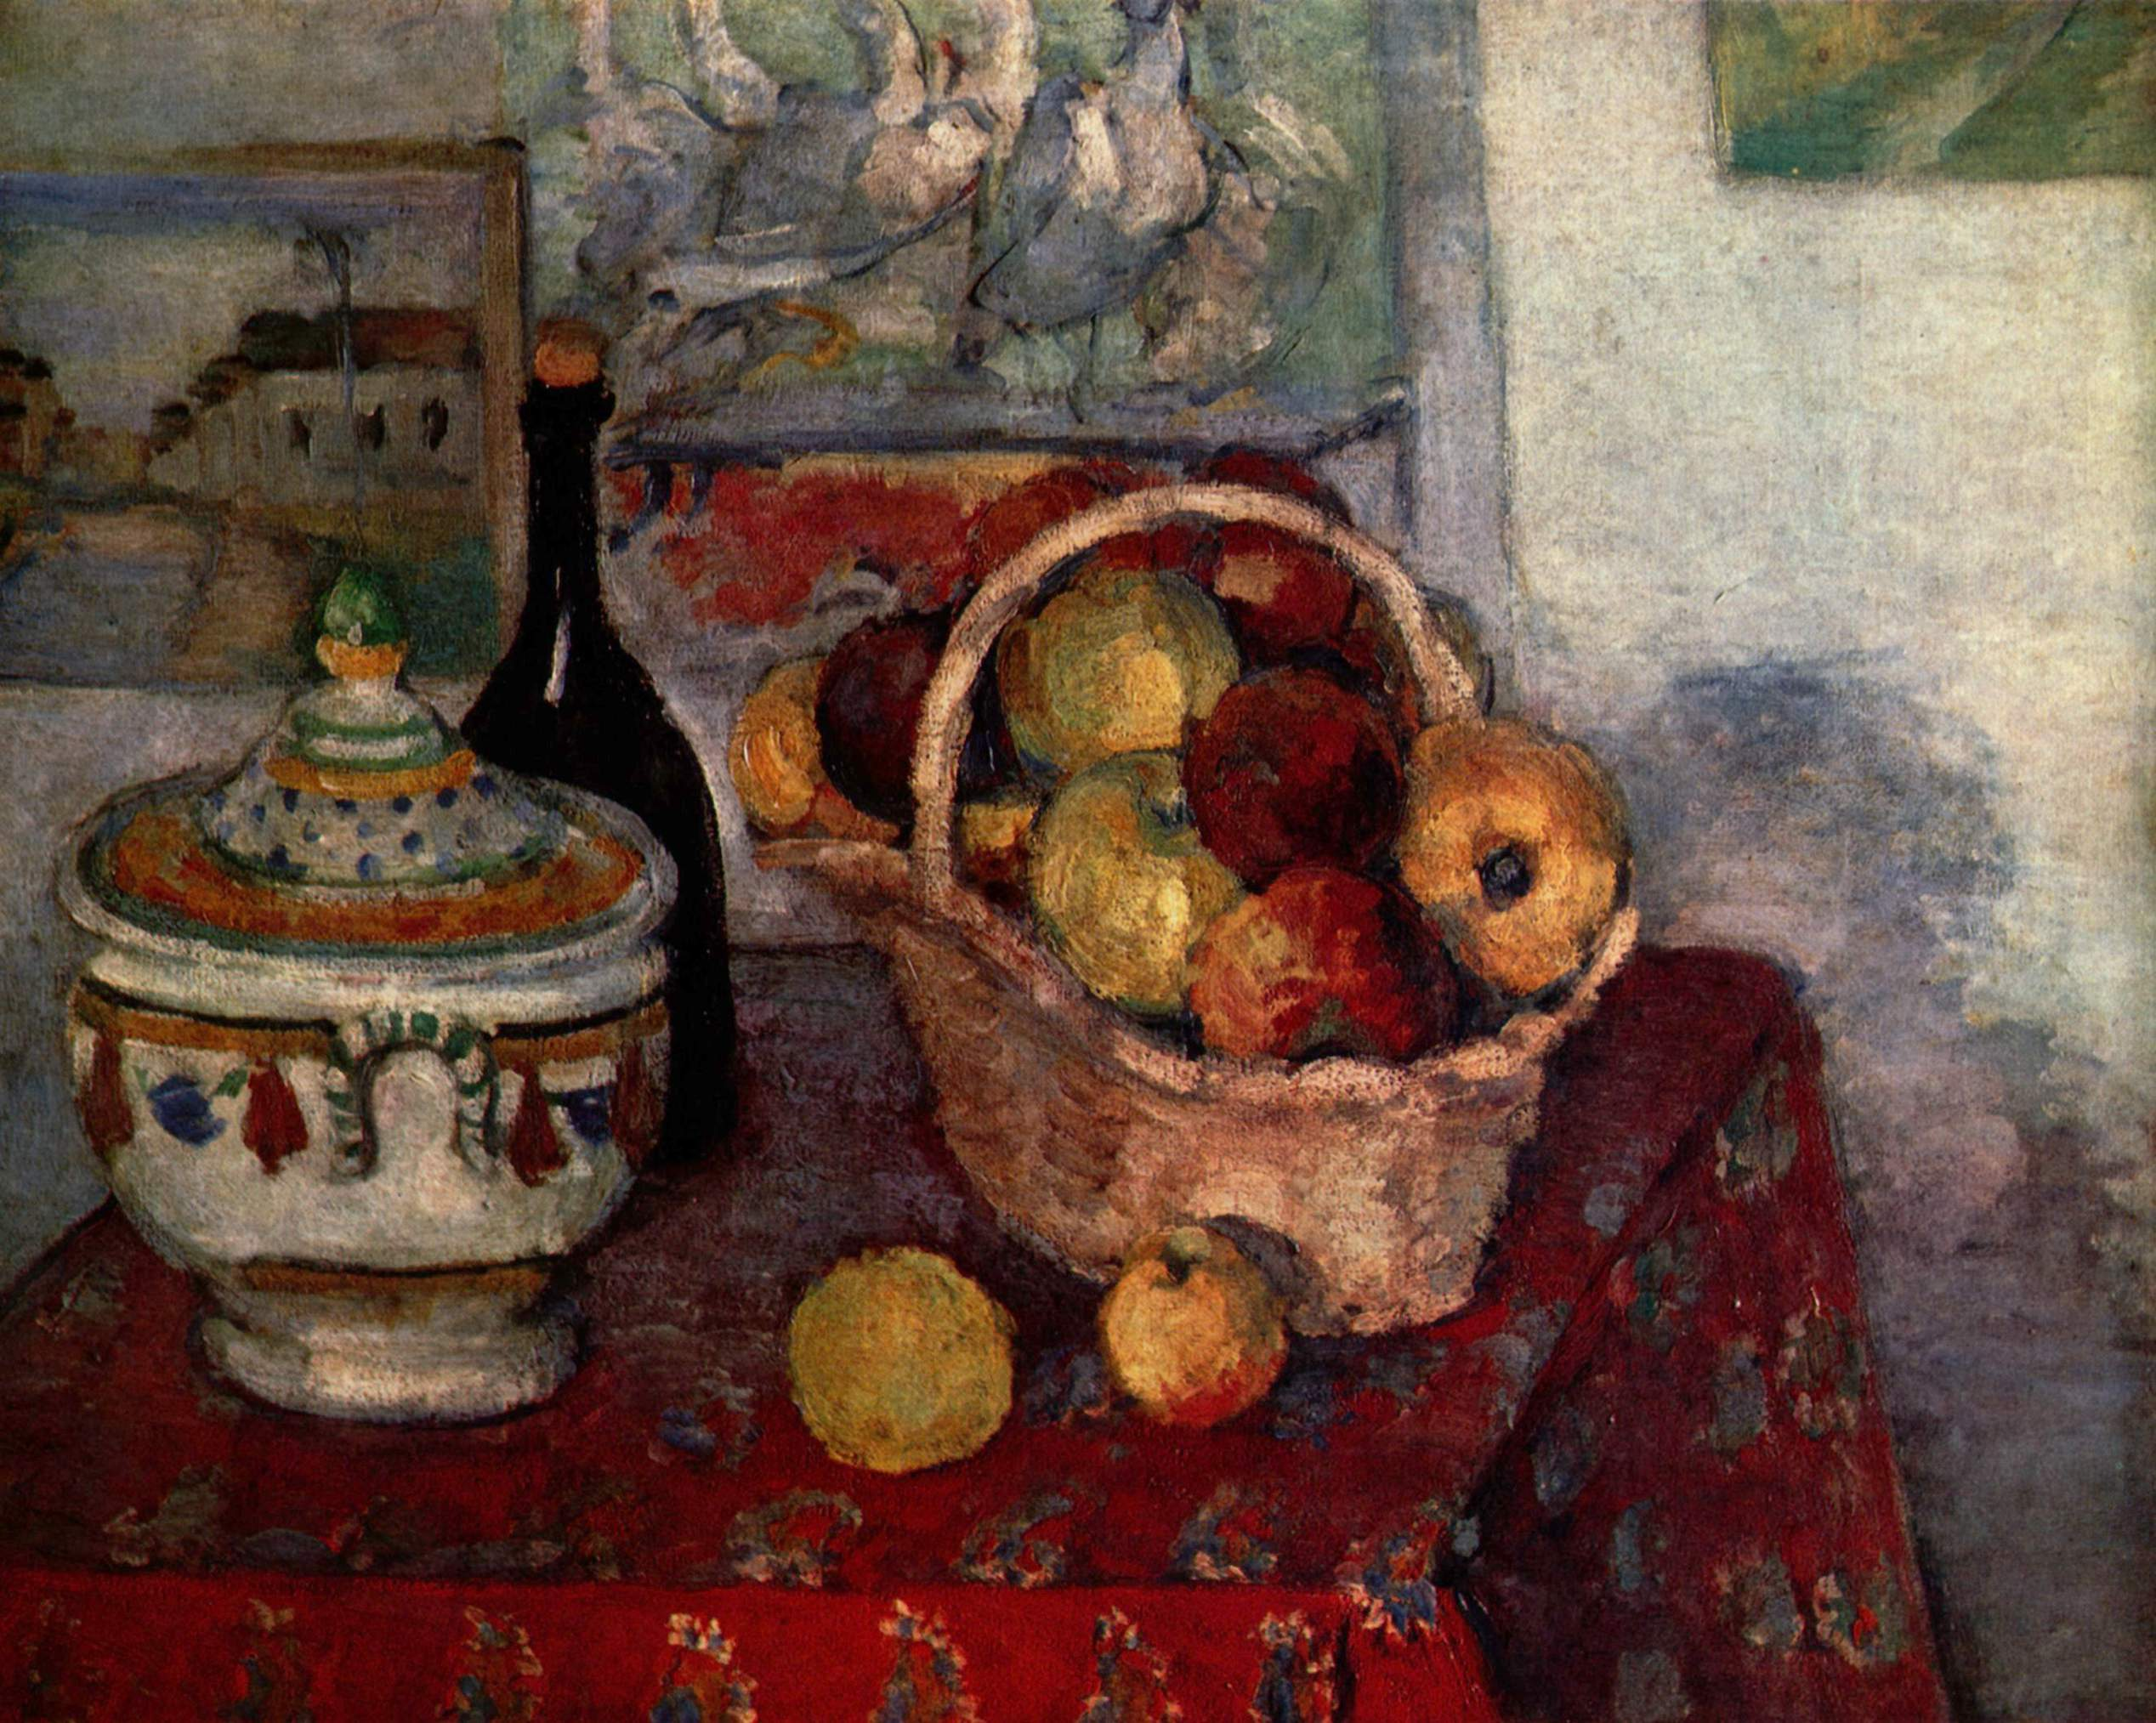 Still life with soup tureen 1884